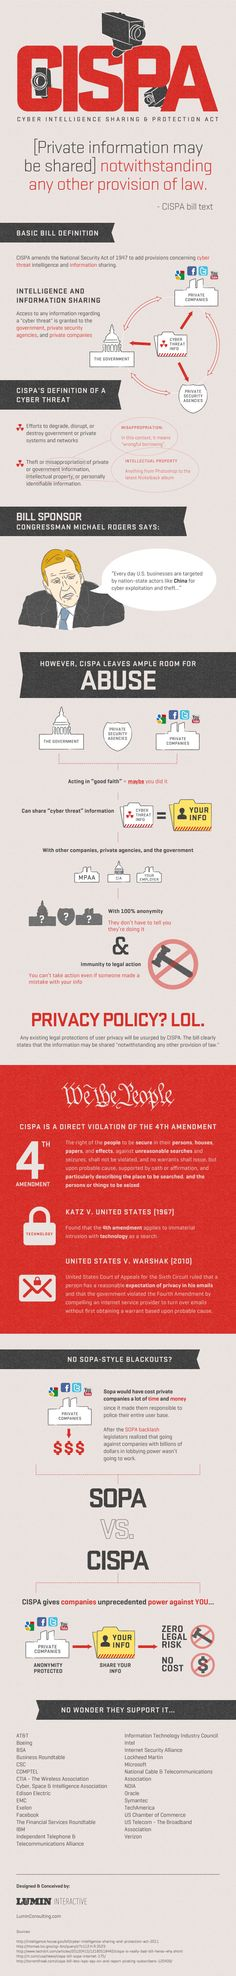 CISPA  ---  http://technical.ly/baltimore/wp-content/uploads/sites/3/2013/04/CISPA-infographic1.jpg